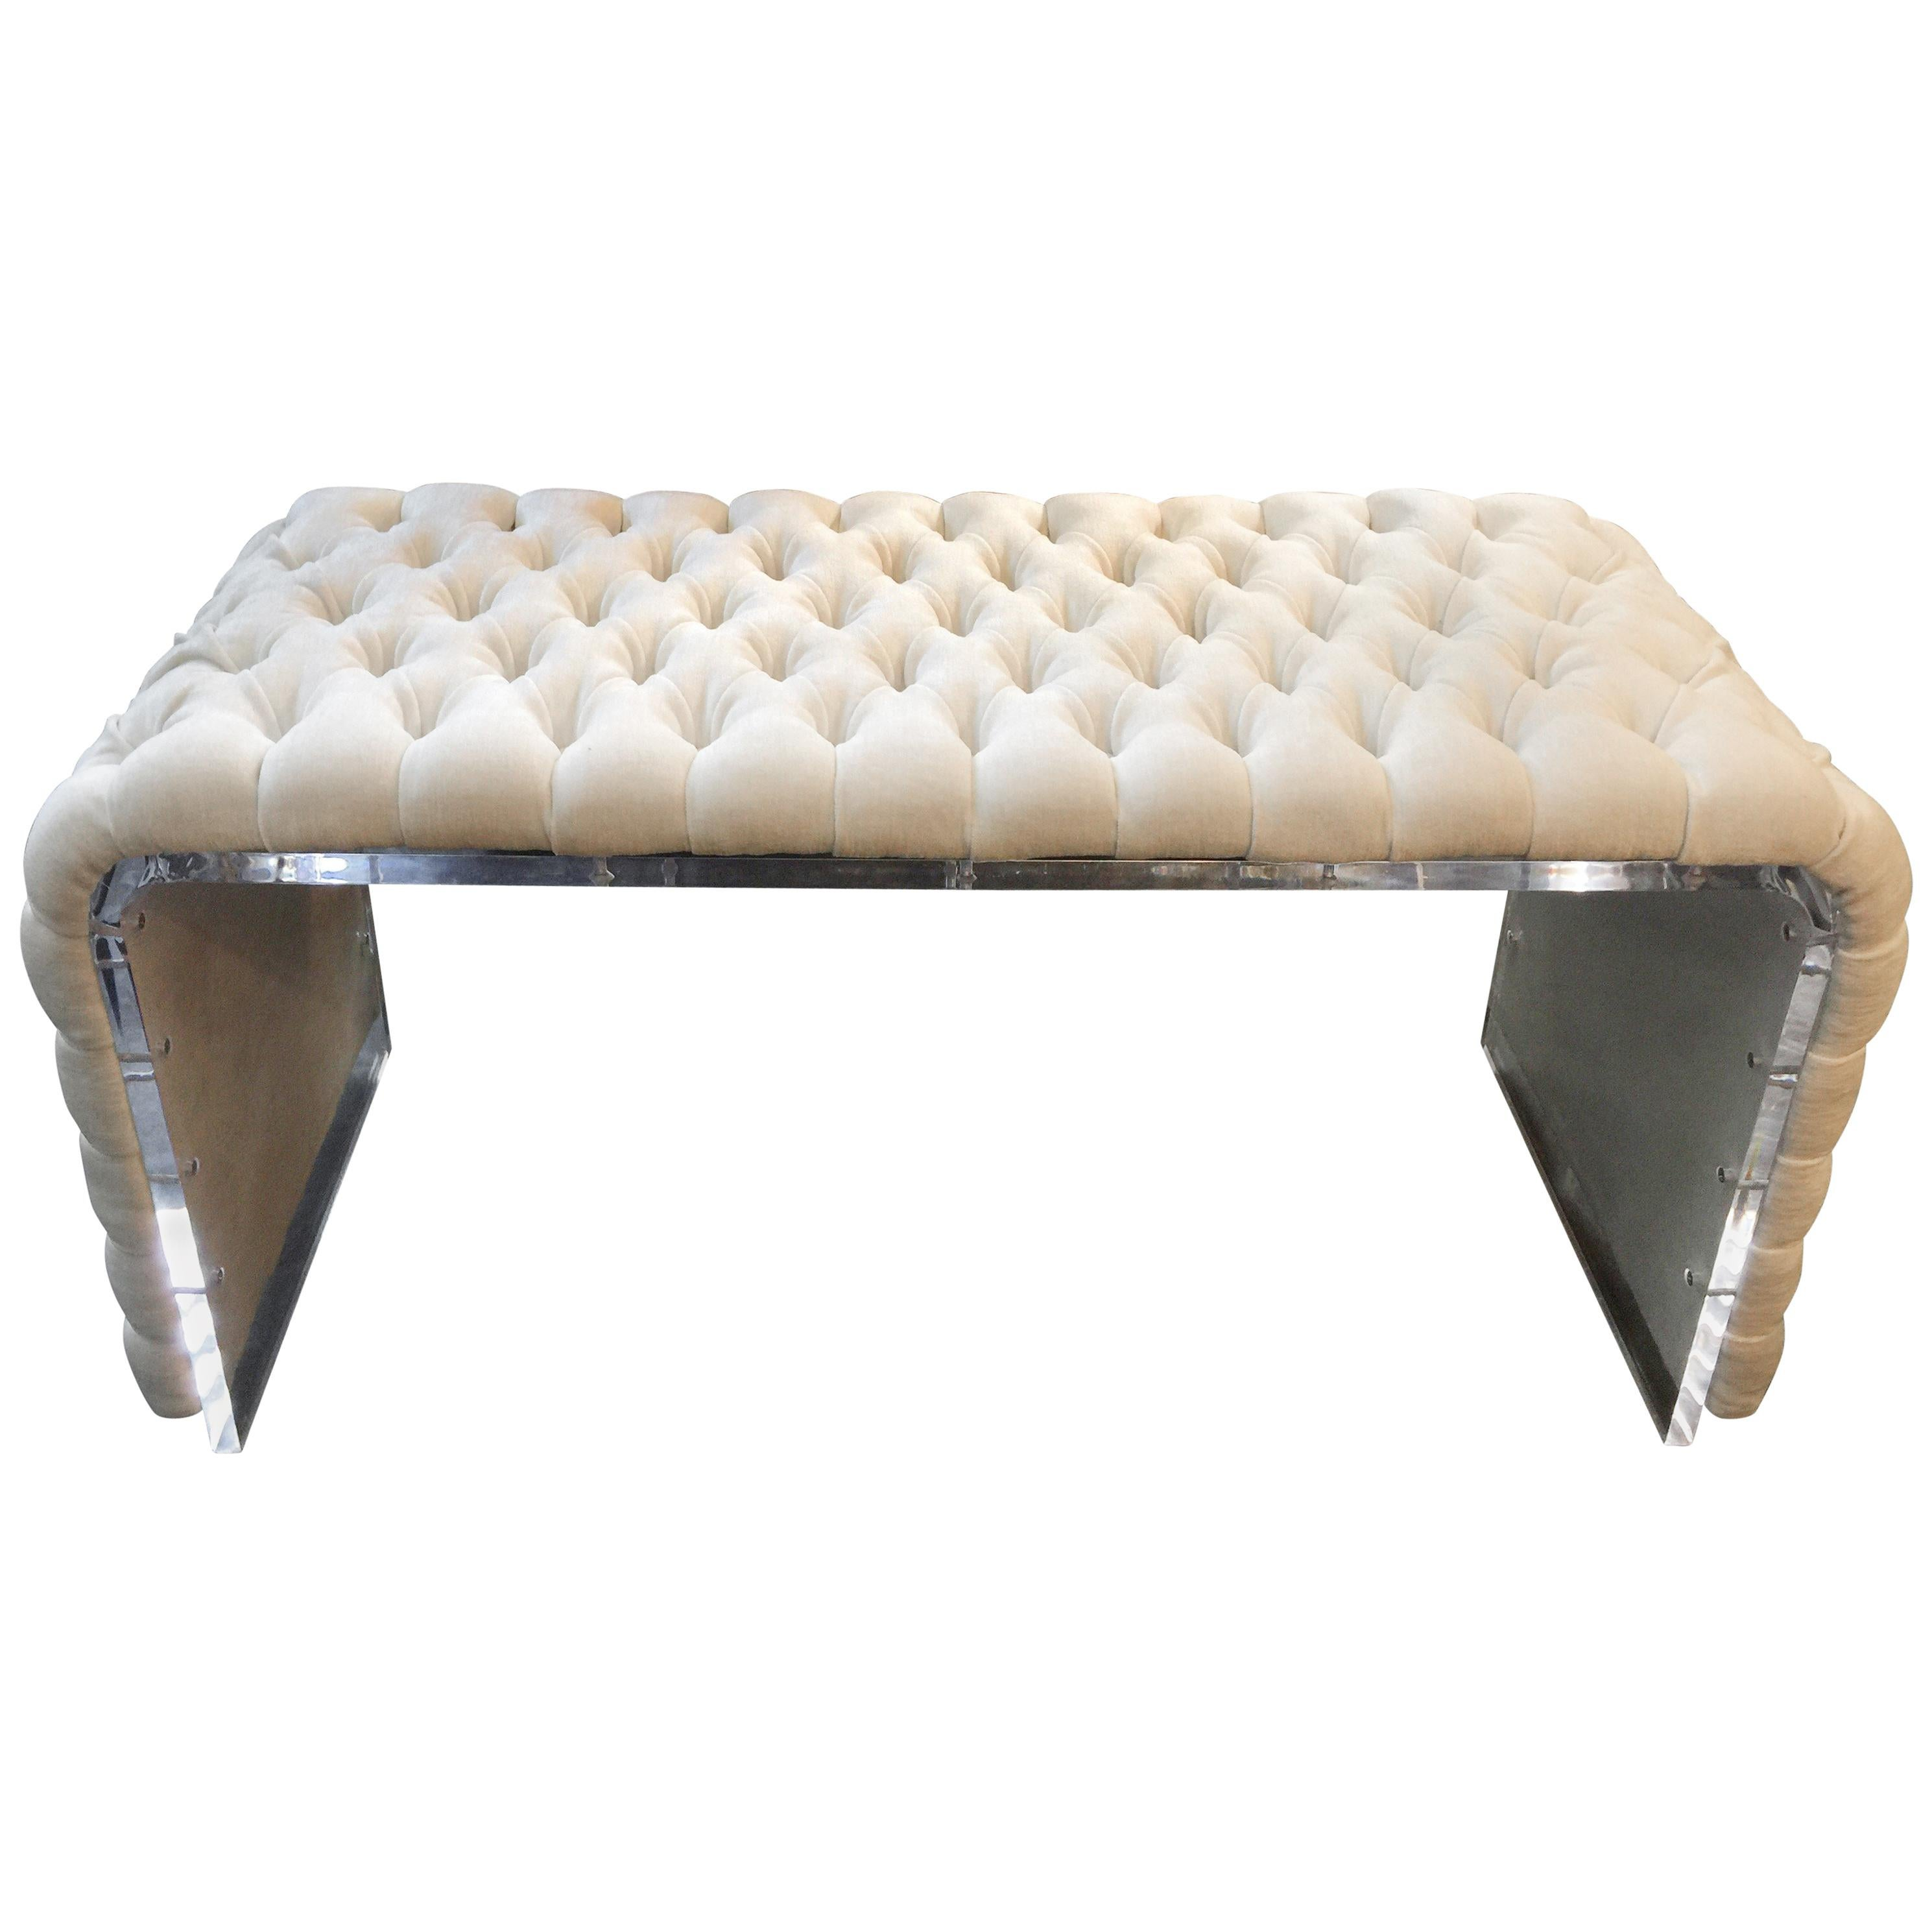 Curved Acrylic Framed Dressing Room Bench with Tufted Linen Upholstery For  Sale at 1stdibs